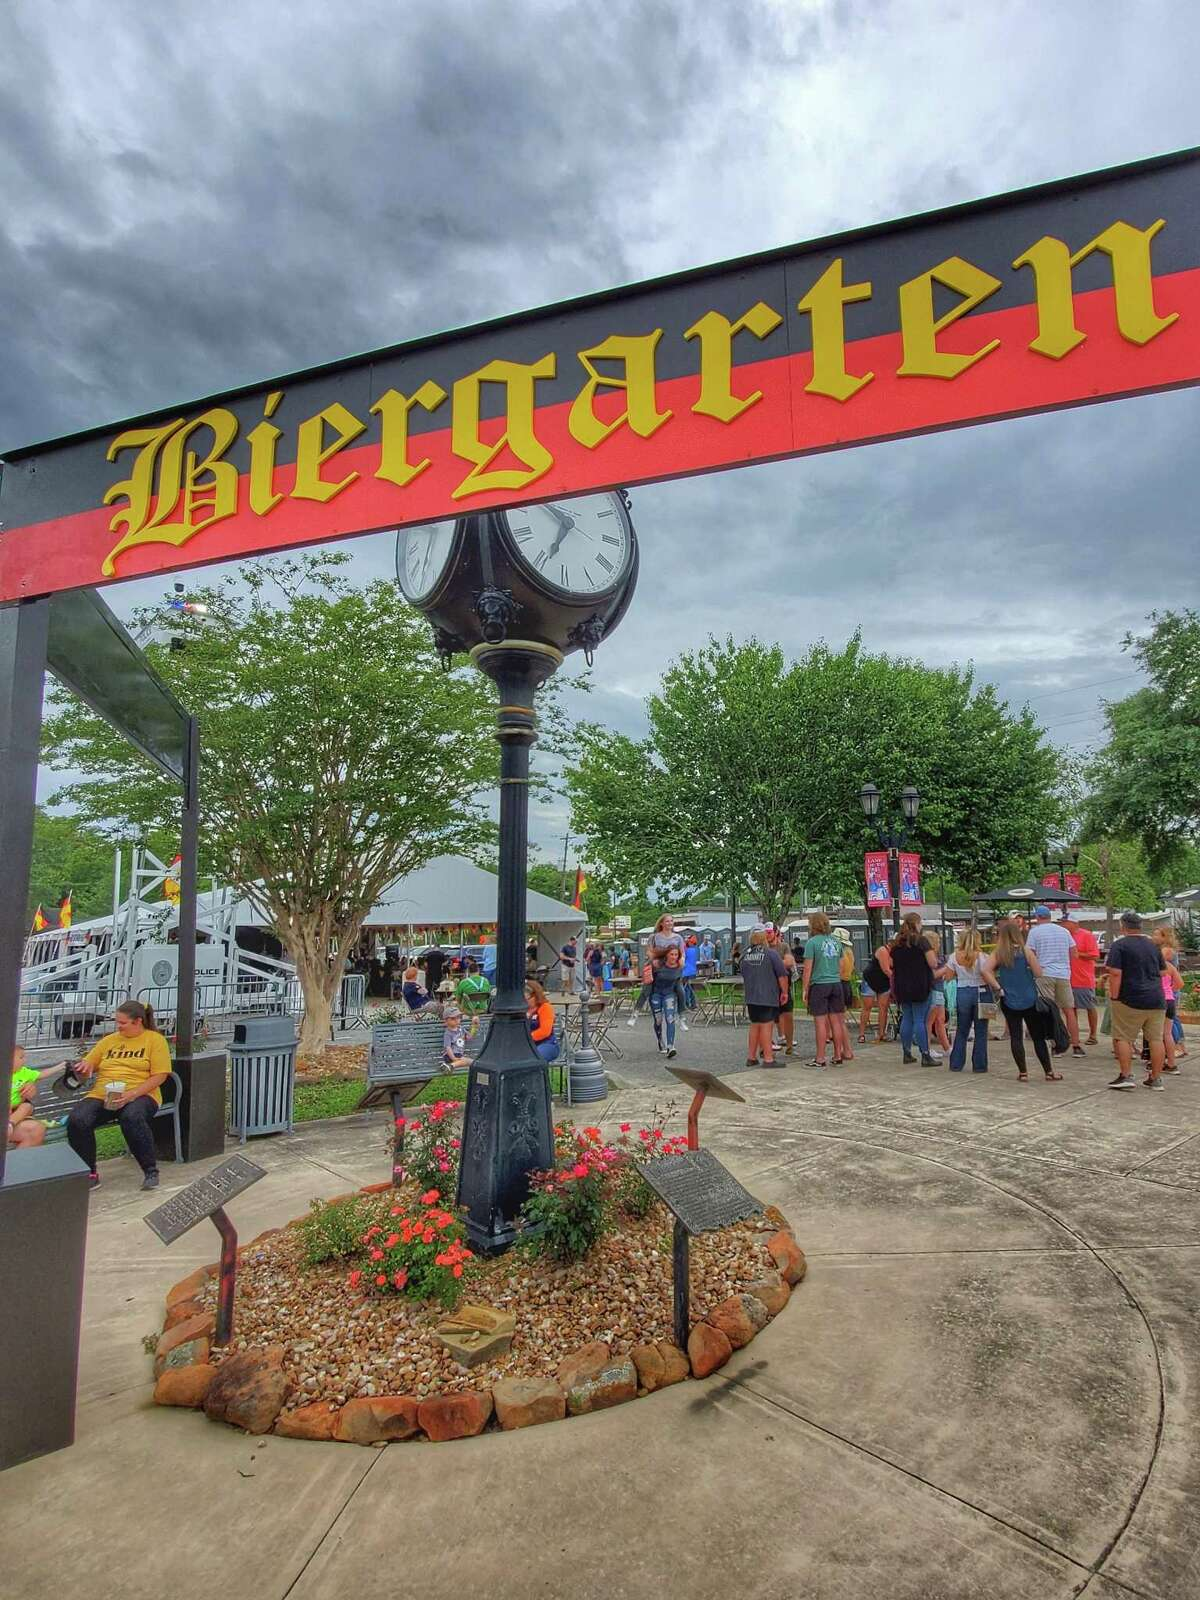 Guests enjoy food and festivities Friday, June 4, during the German Heritage Festival in Tomball.